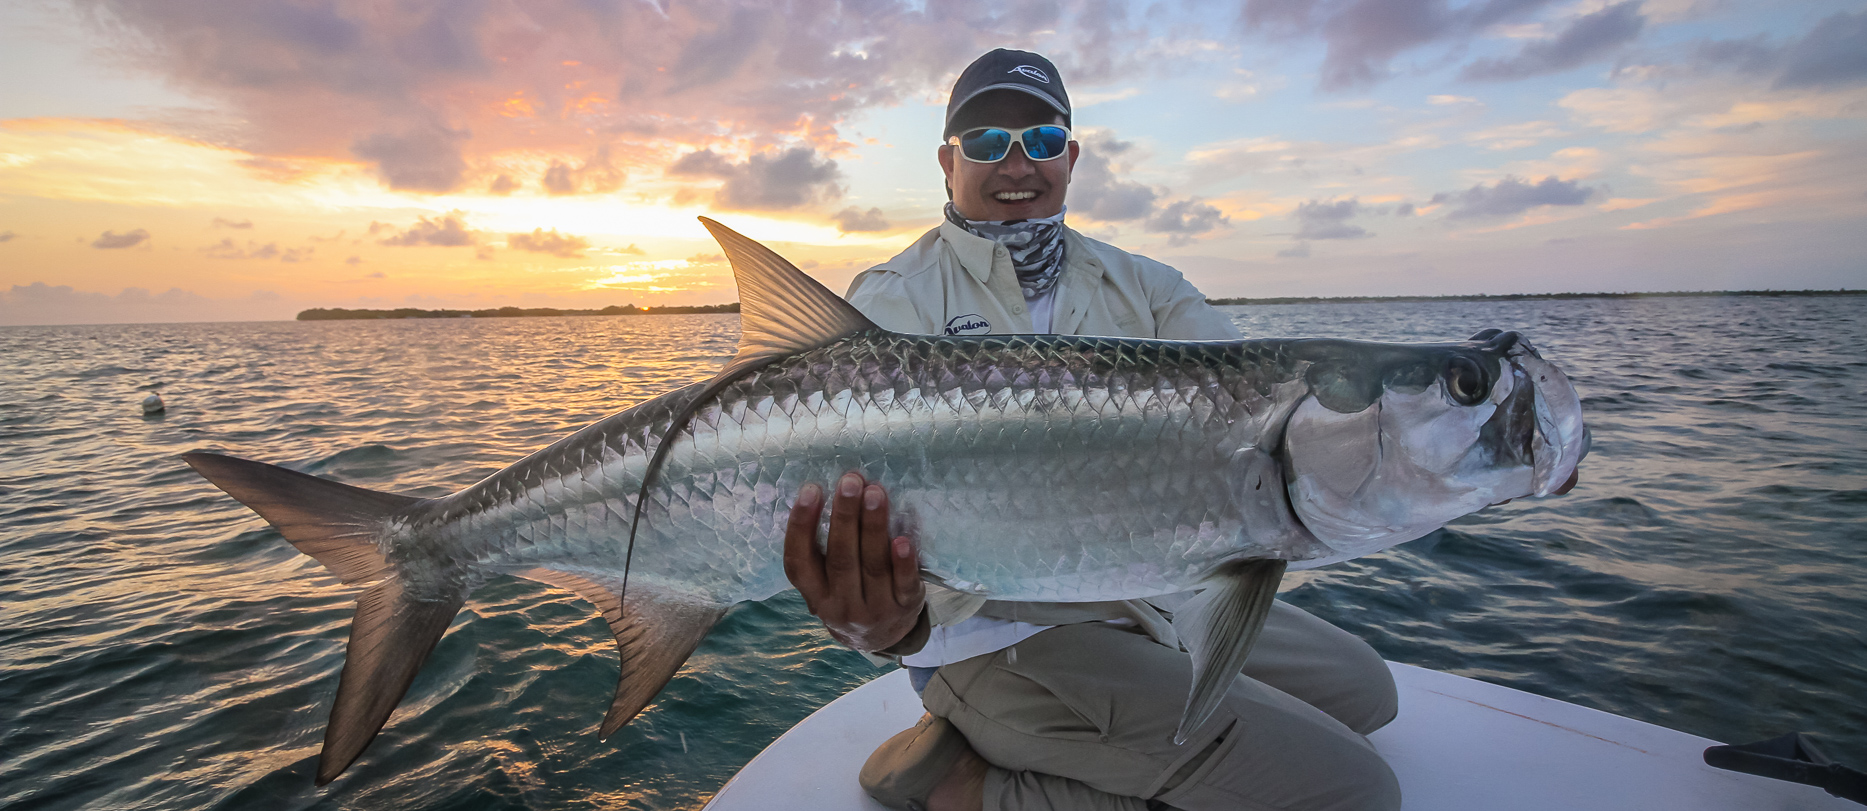 Cuba fly fishing trips, Cuba fishing, tarpon, bonefish, permit, saltwater fly fishing